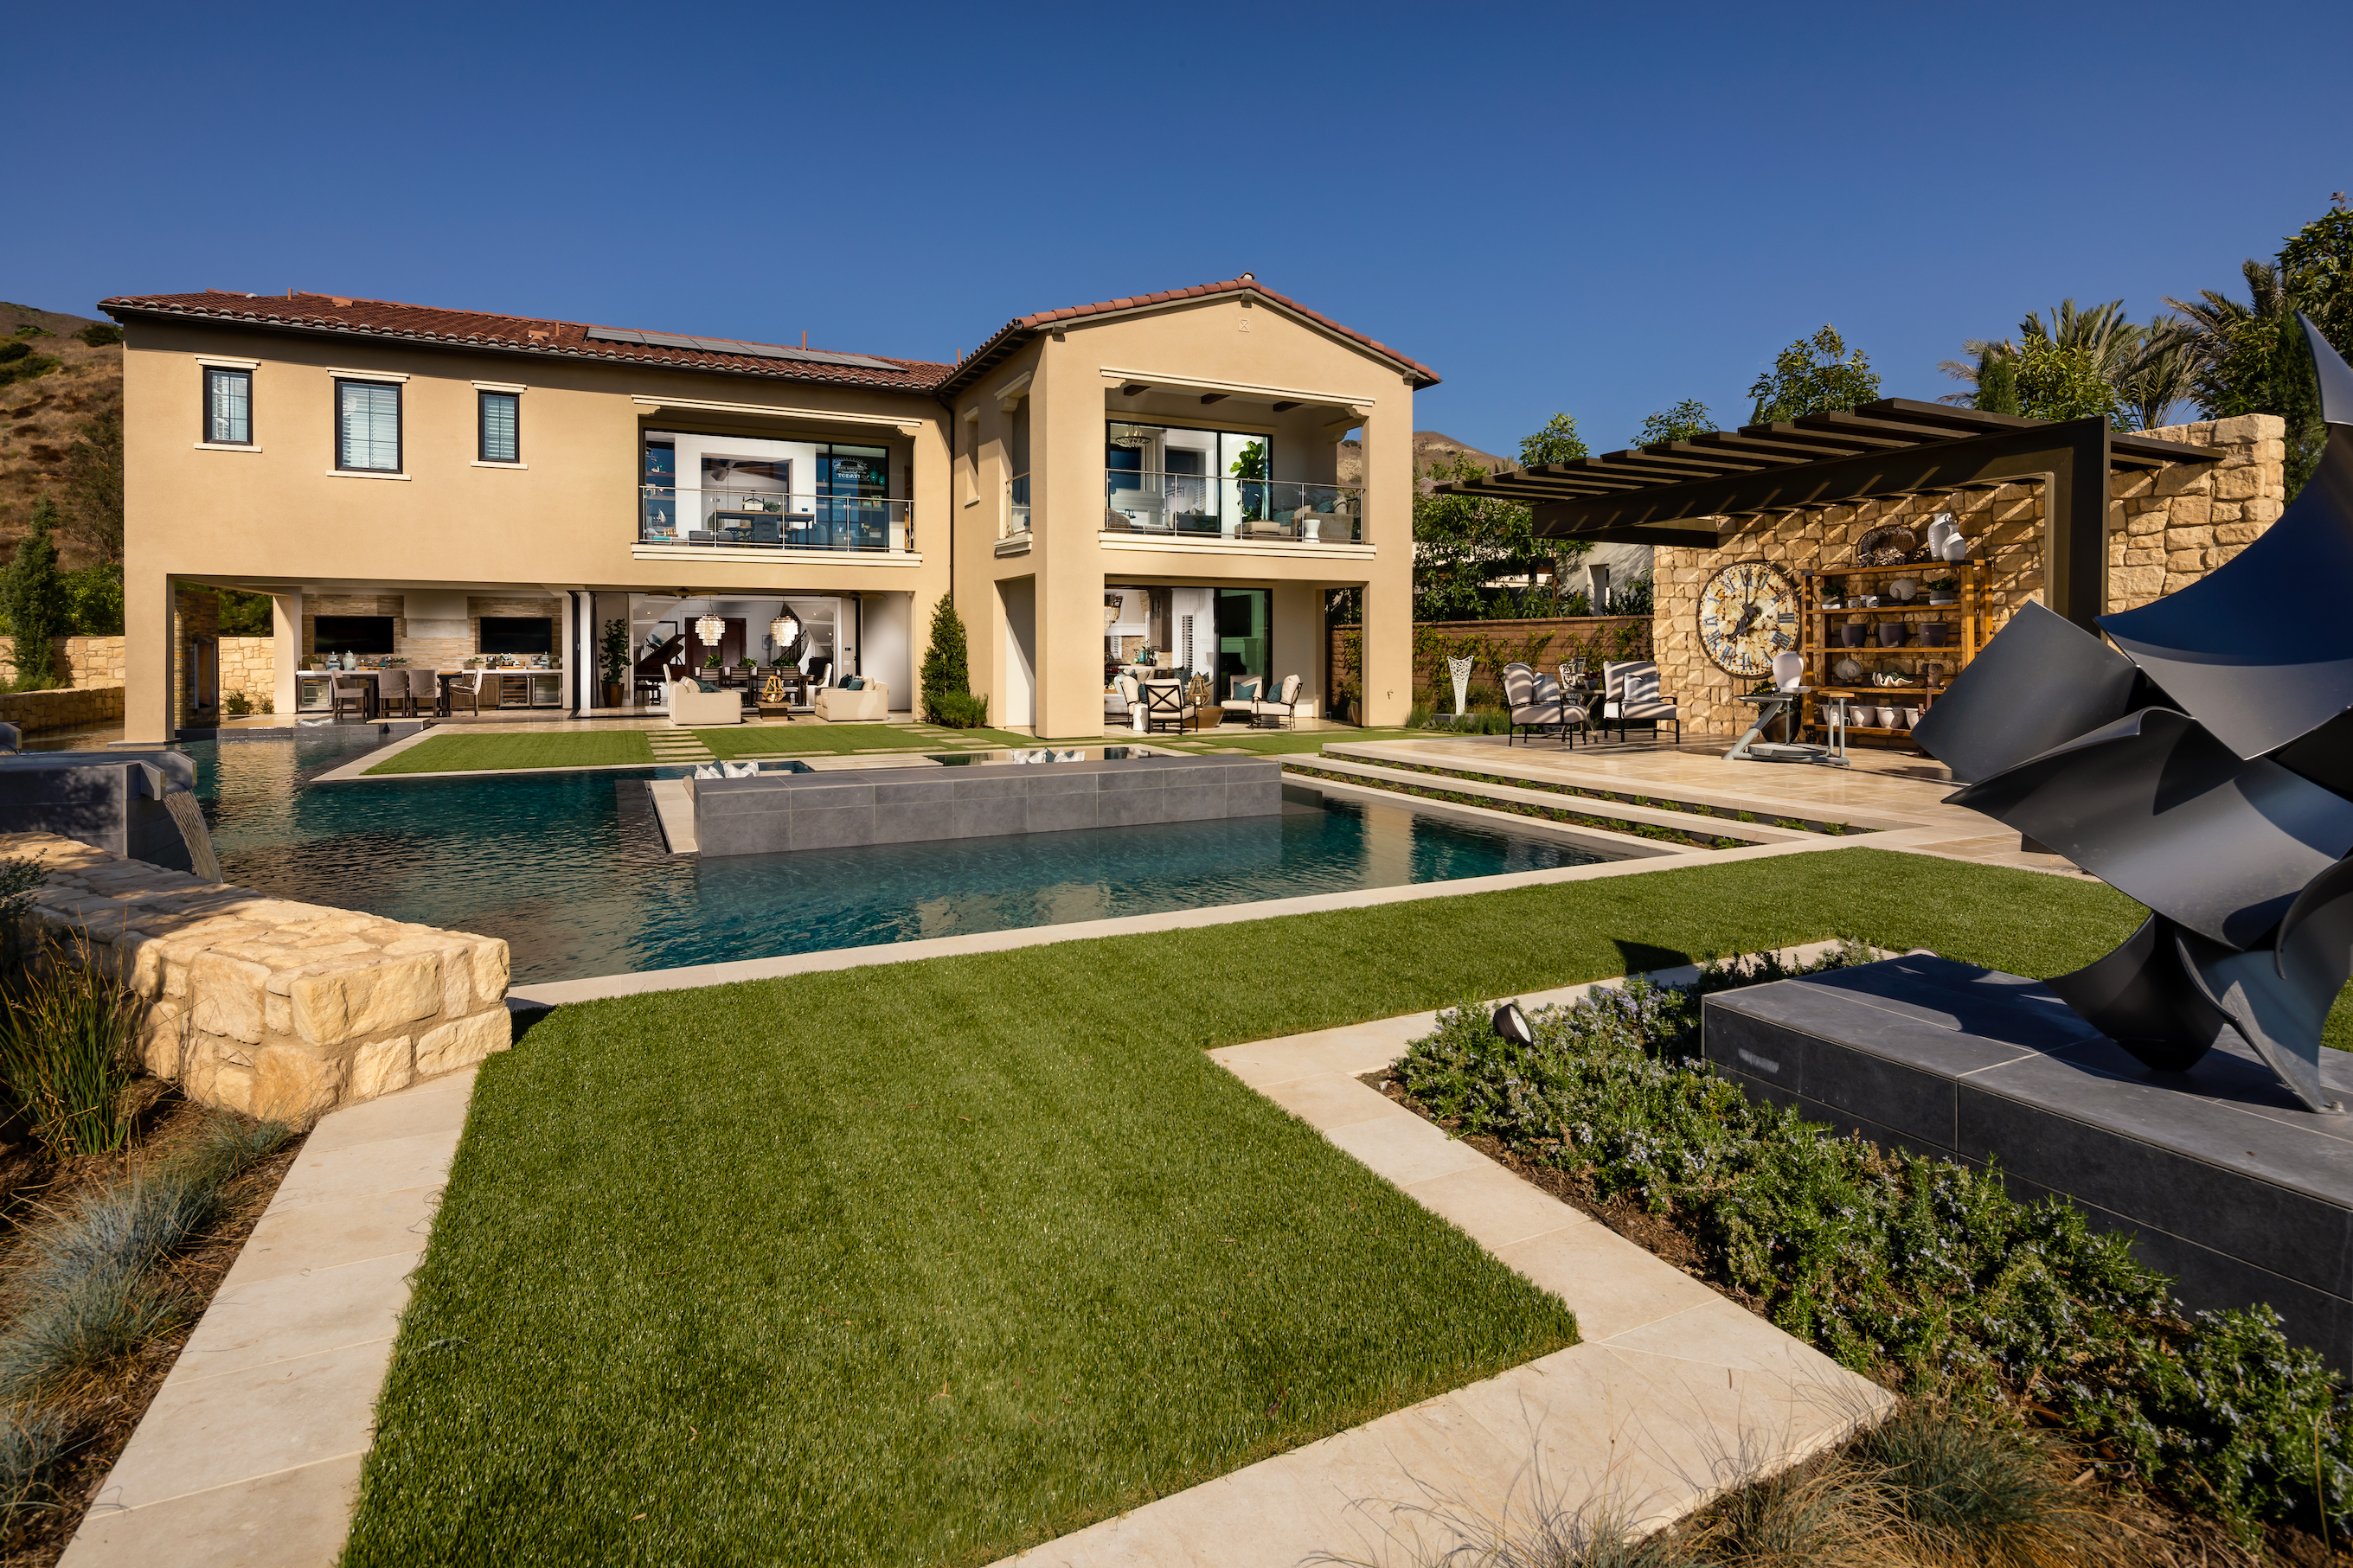 Backyard with a pool.